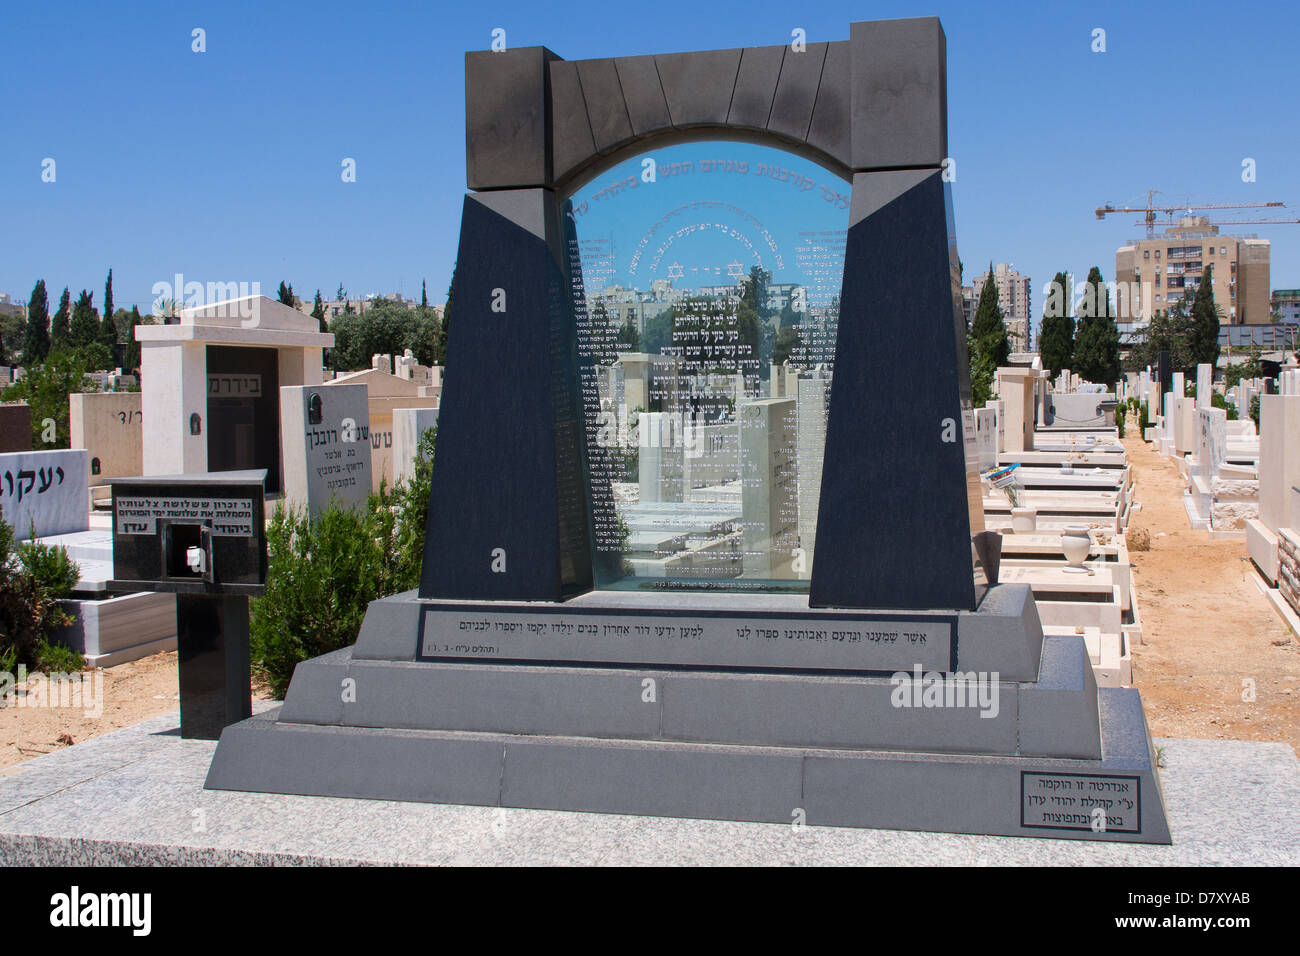 Memorial monument for the massacred Jewish community (1948) of Aden in Yemen, located at the Holon Cemetery in Israel. - Stock Image